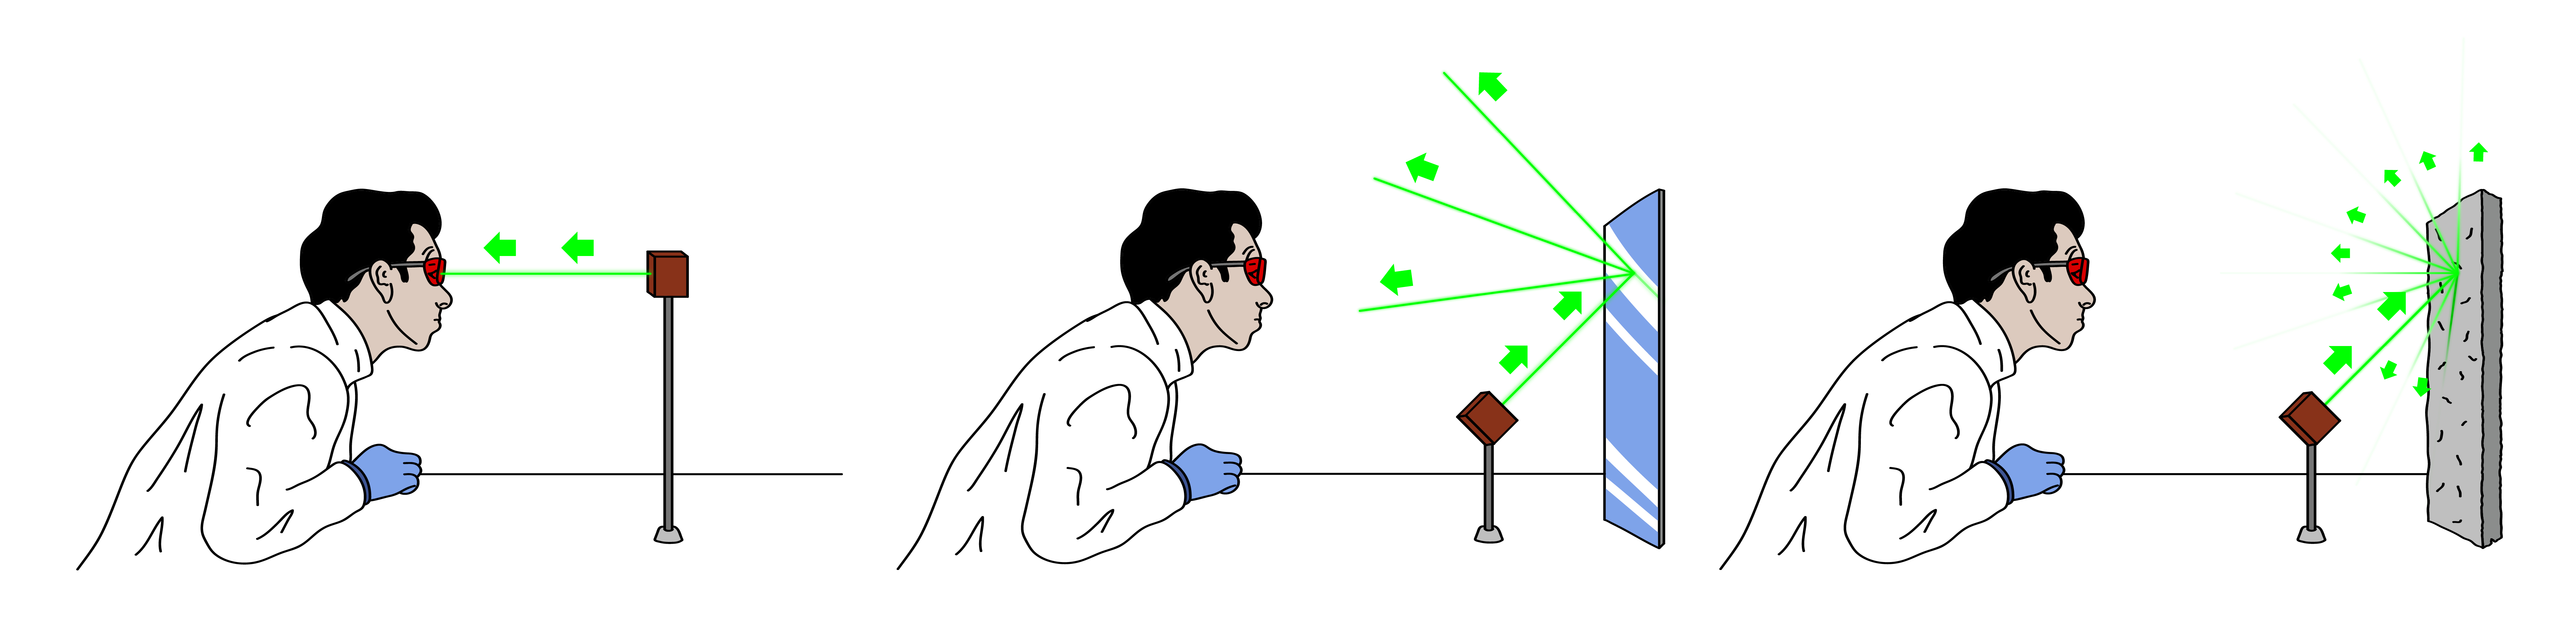 Laser Safety Viewing: Direct, Specular, and Diffused